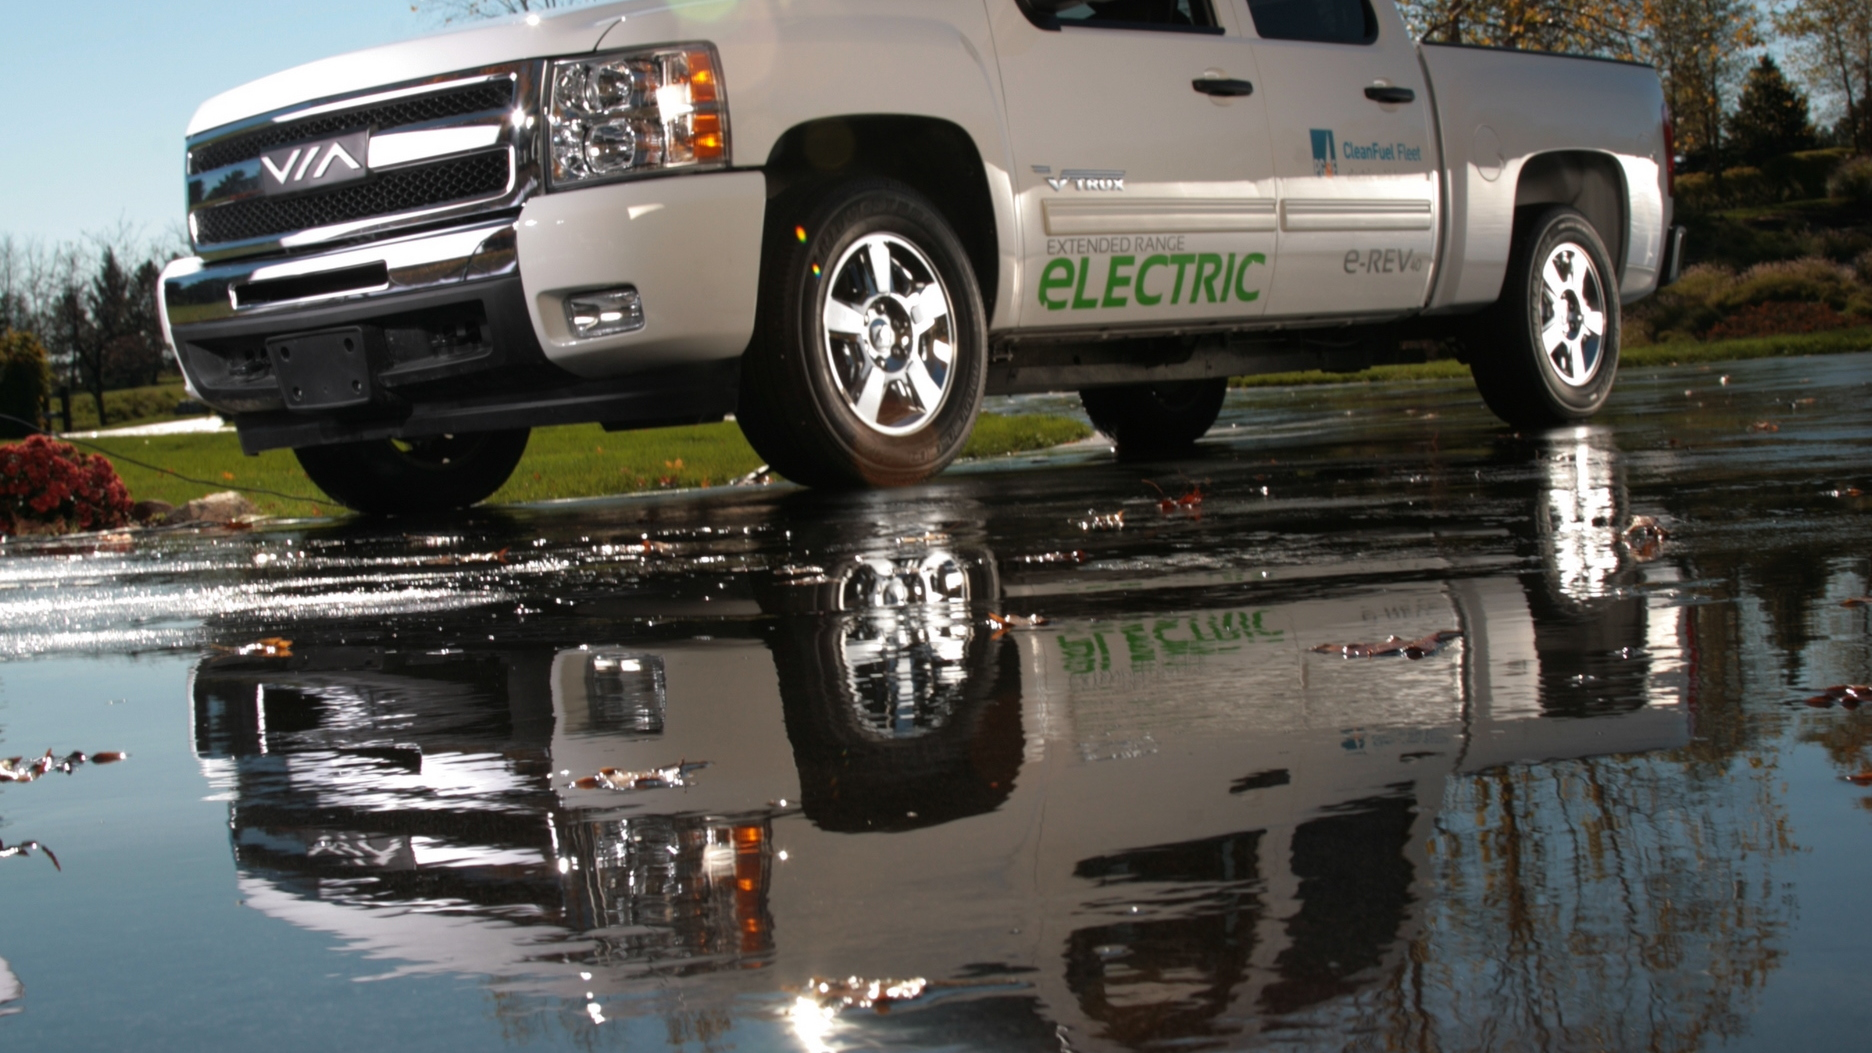 Via eREV range-extended electric pickup